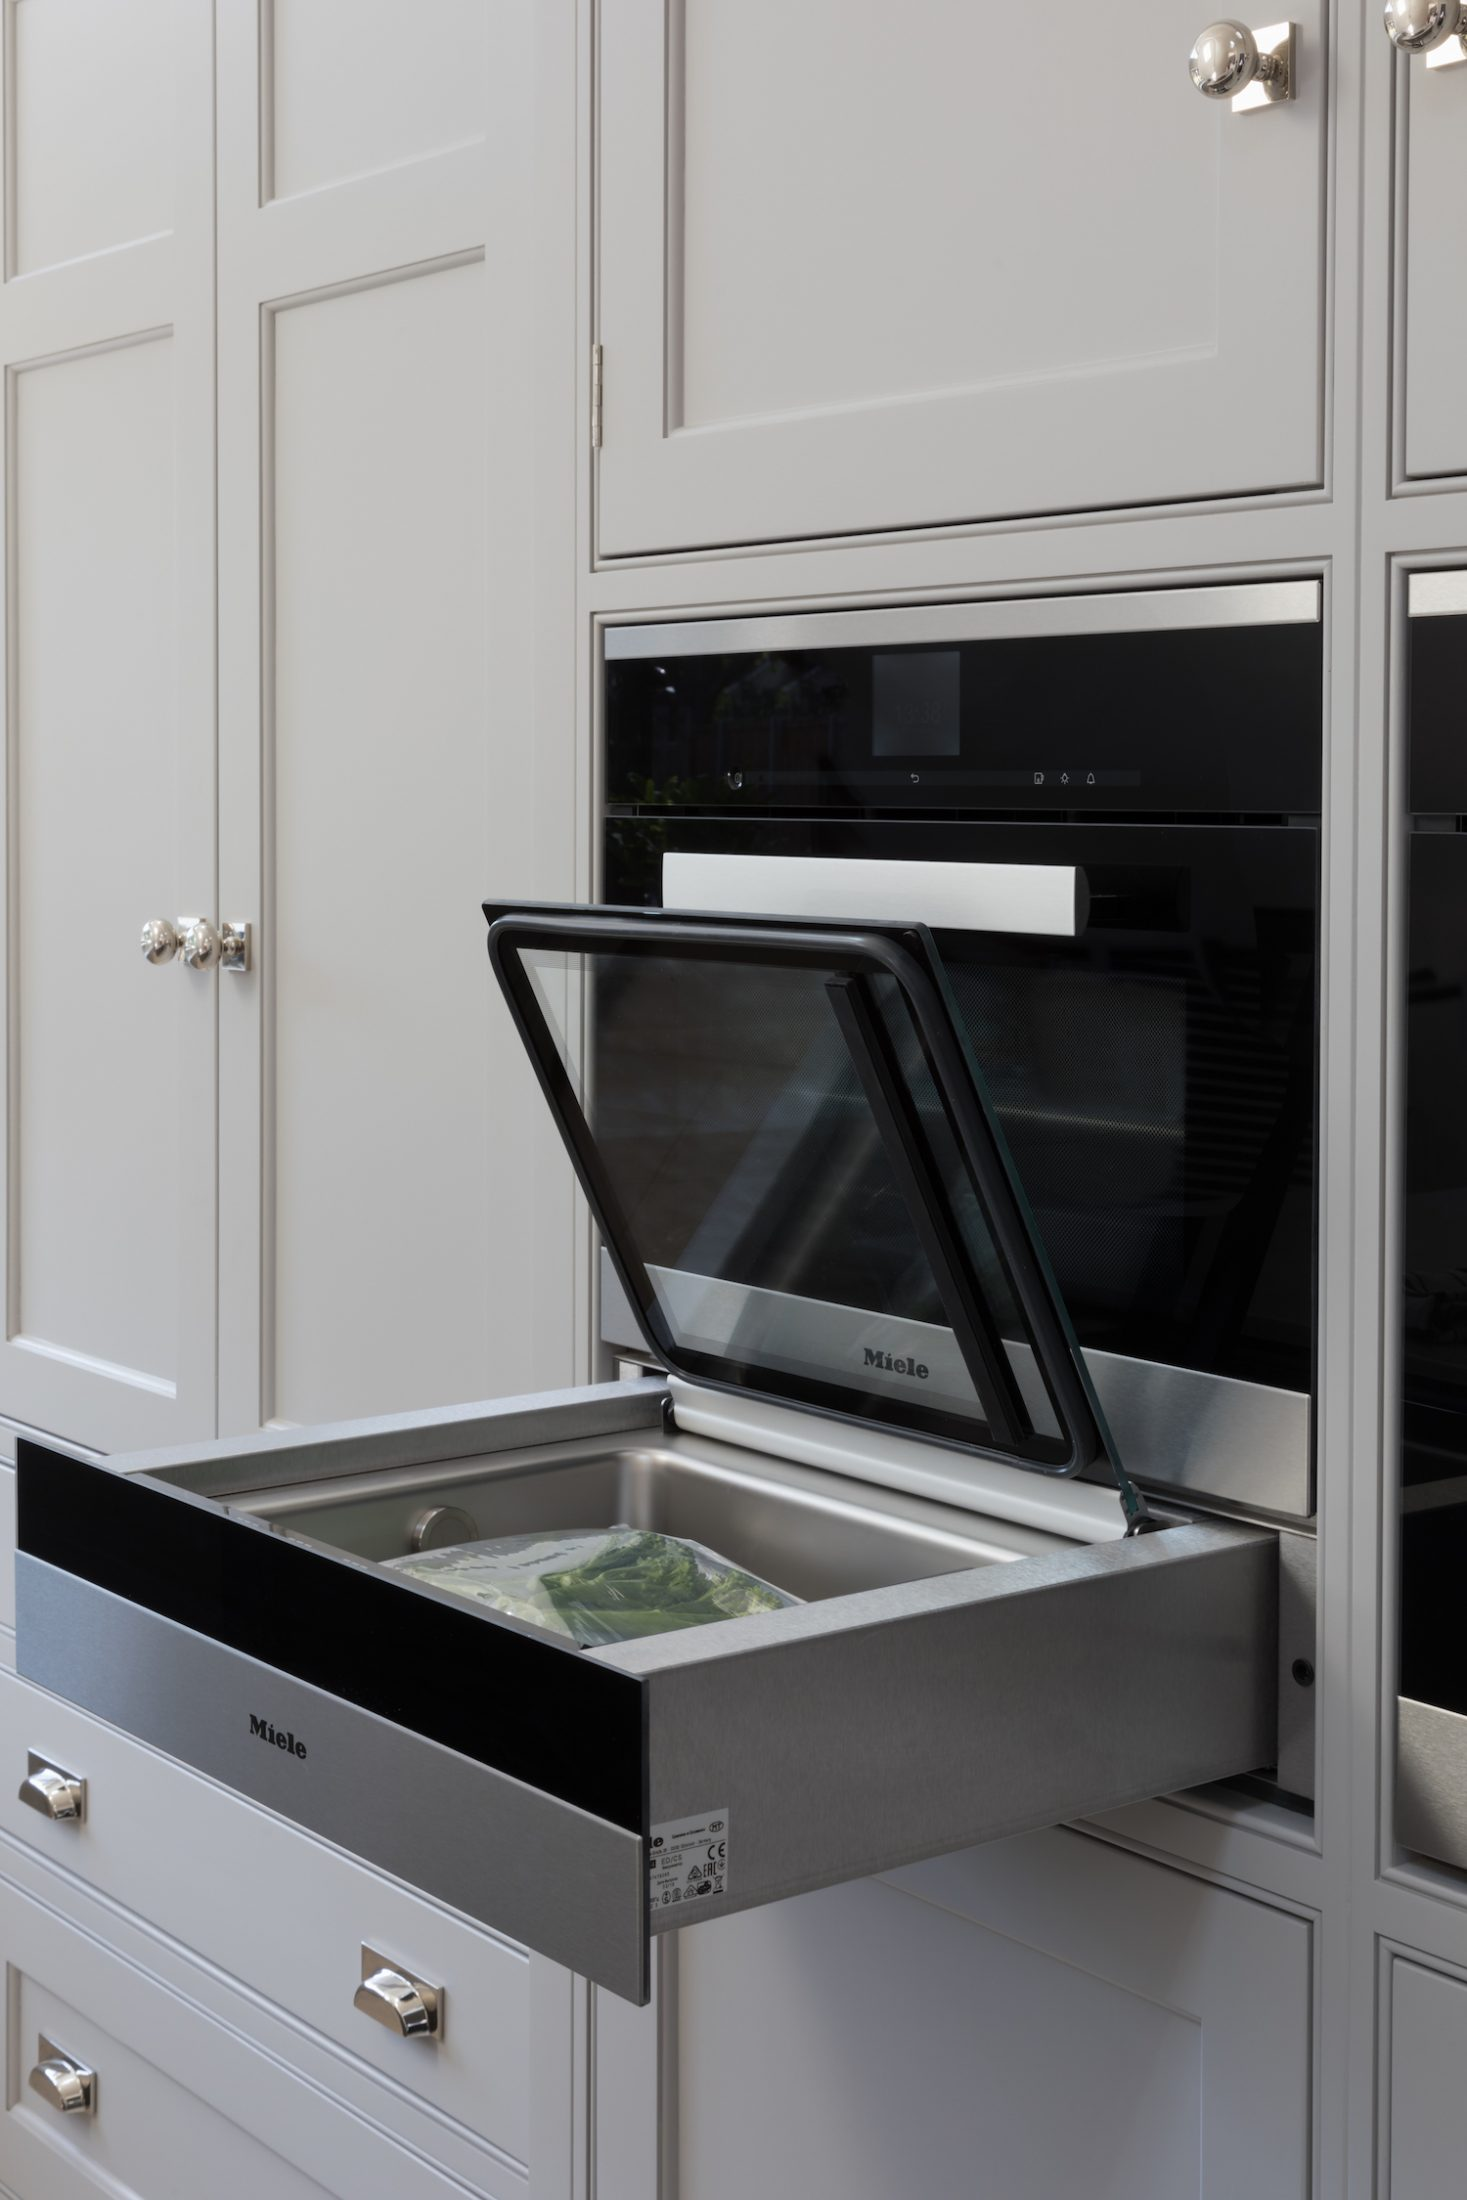 Miele Sous Vide Vacuum Sealing Drawer Humphrey Munson Kitchens